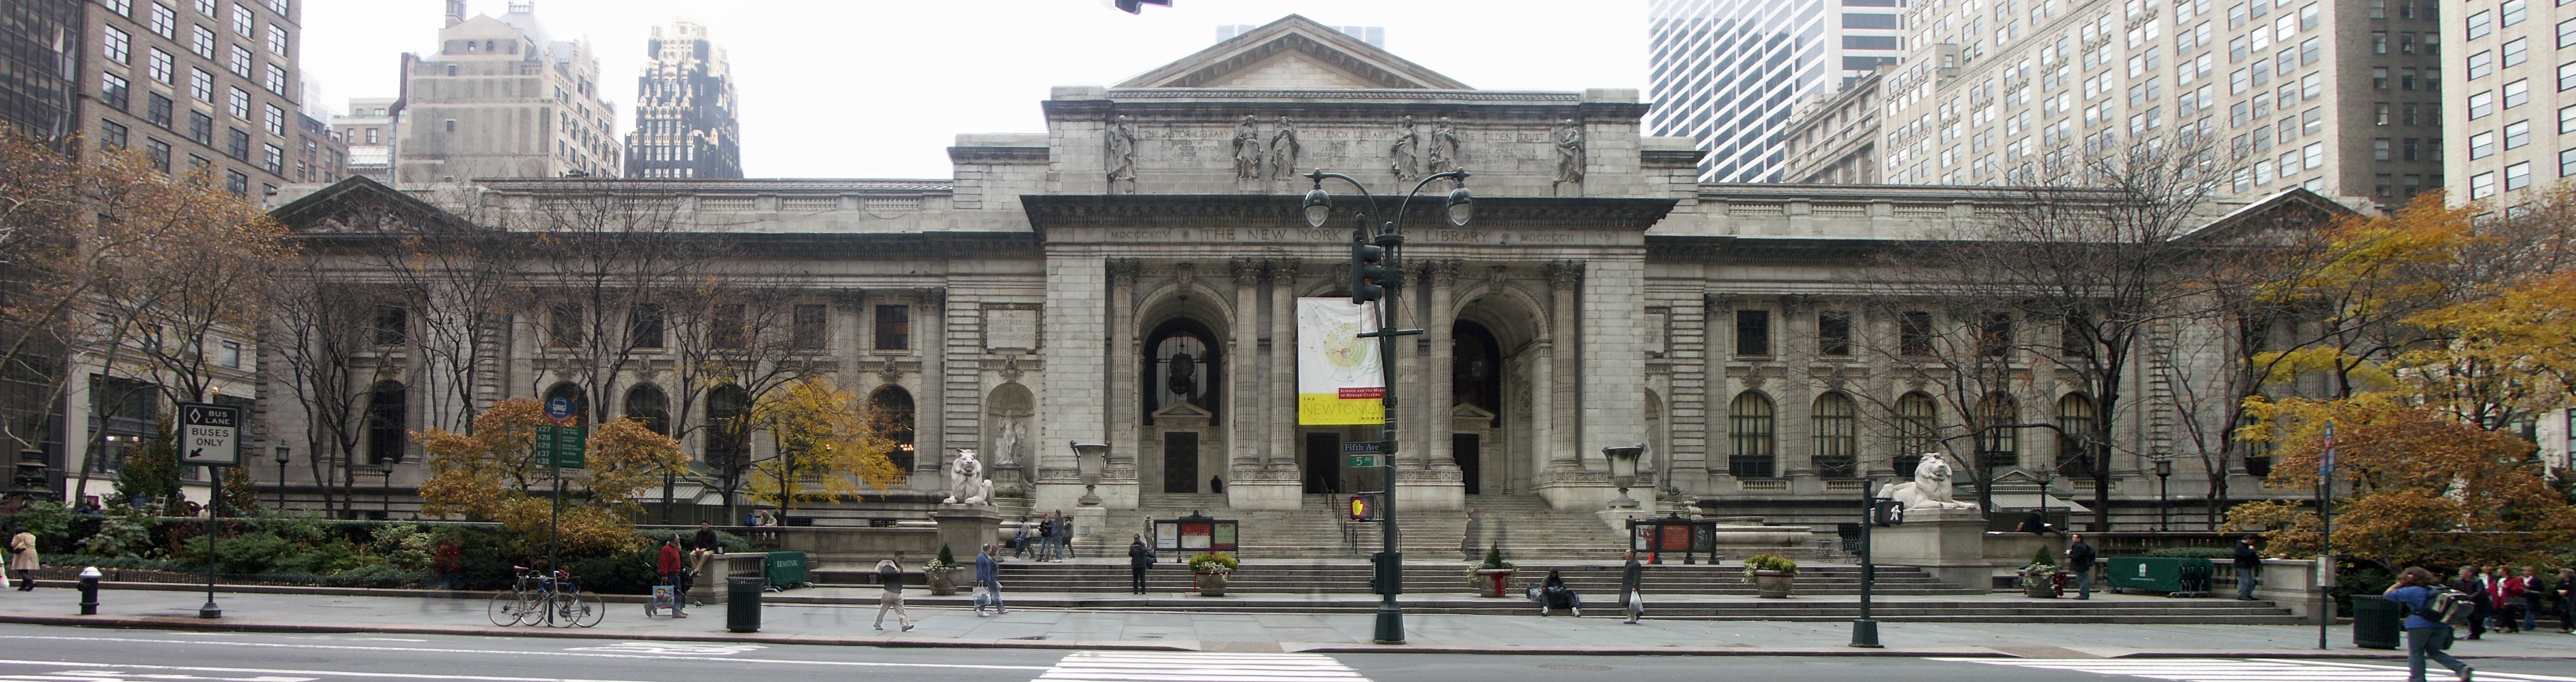 Image Result For The Library Doors